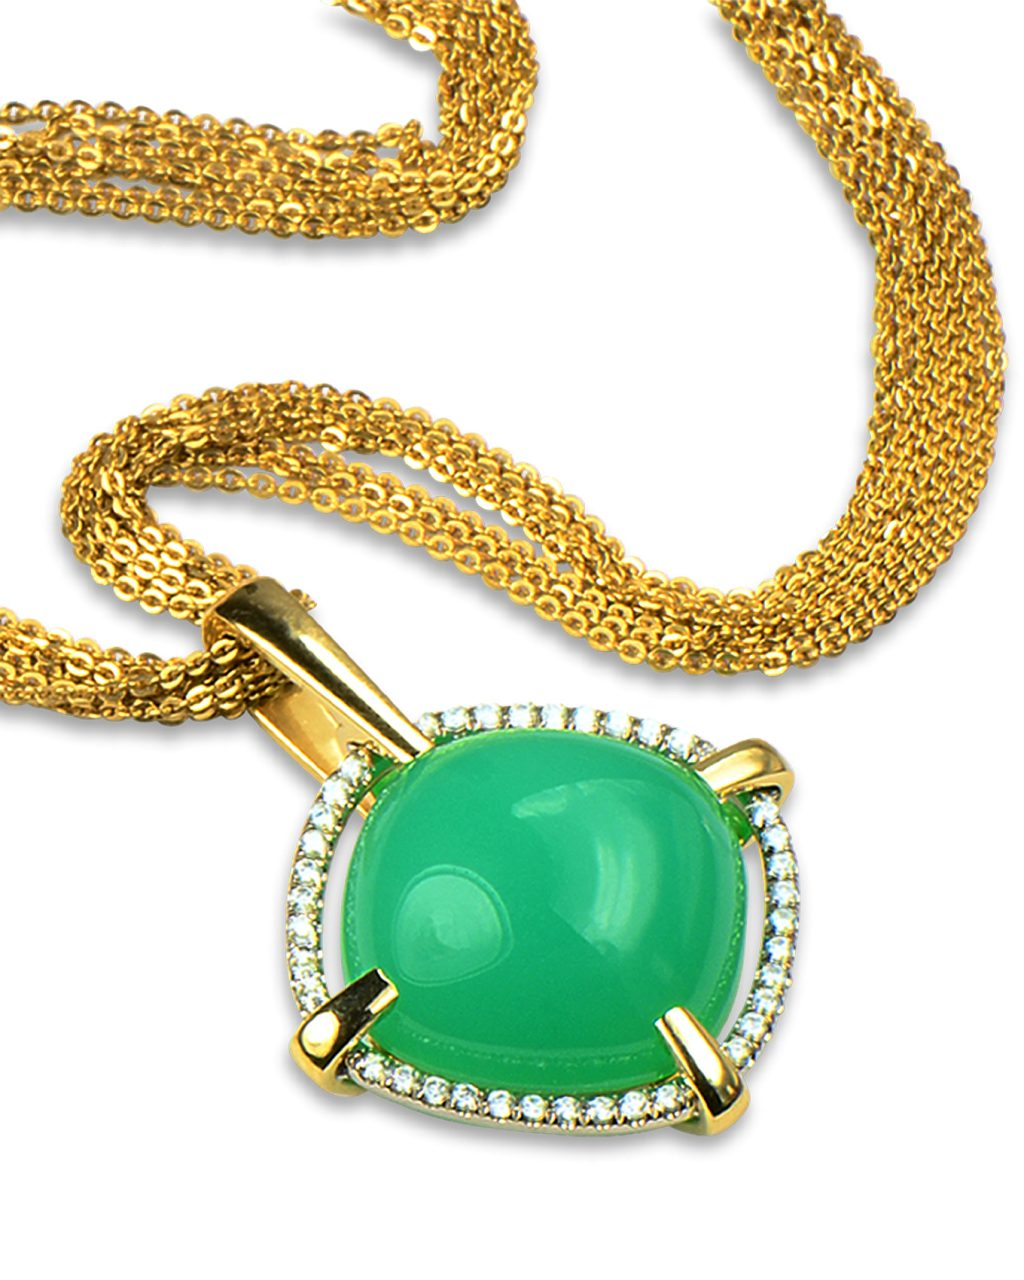 Chrysoprase and diamond necklace